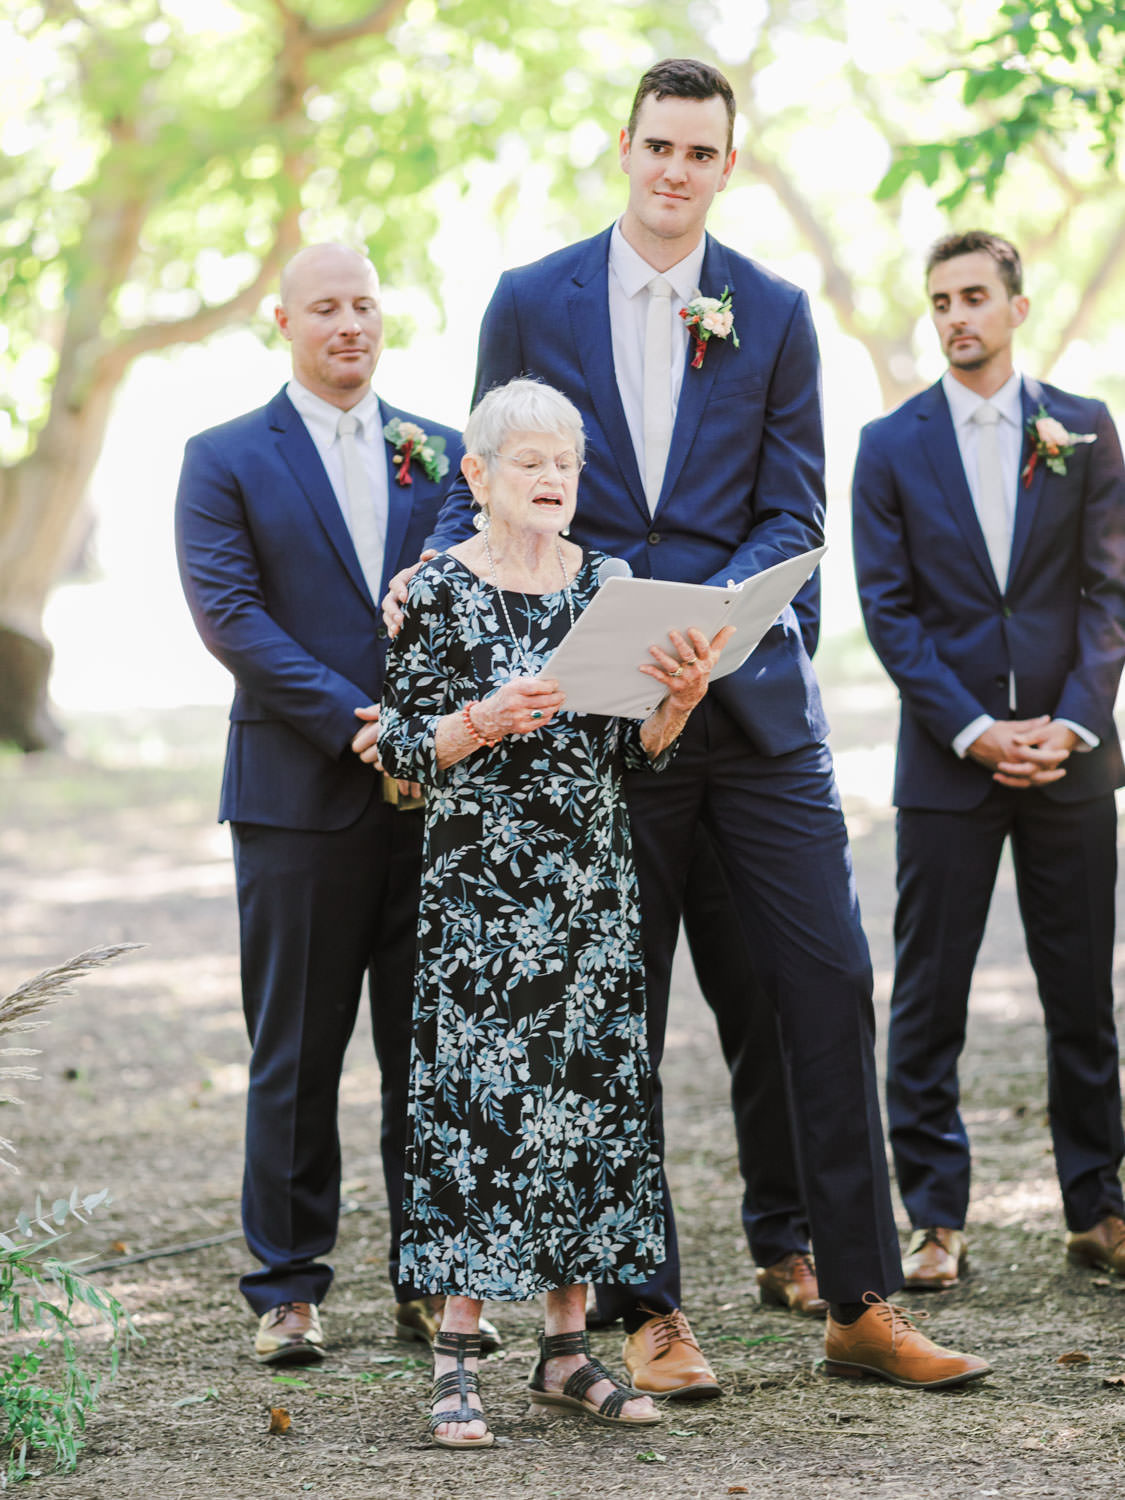 Grandmother of the groom speaking during a Full Belly Farm ceremony on Martha Stewart Weddings by film photographer Cavin Elizabeth Photography